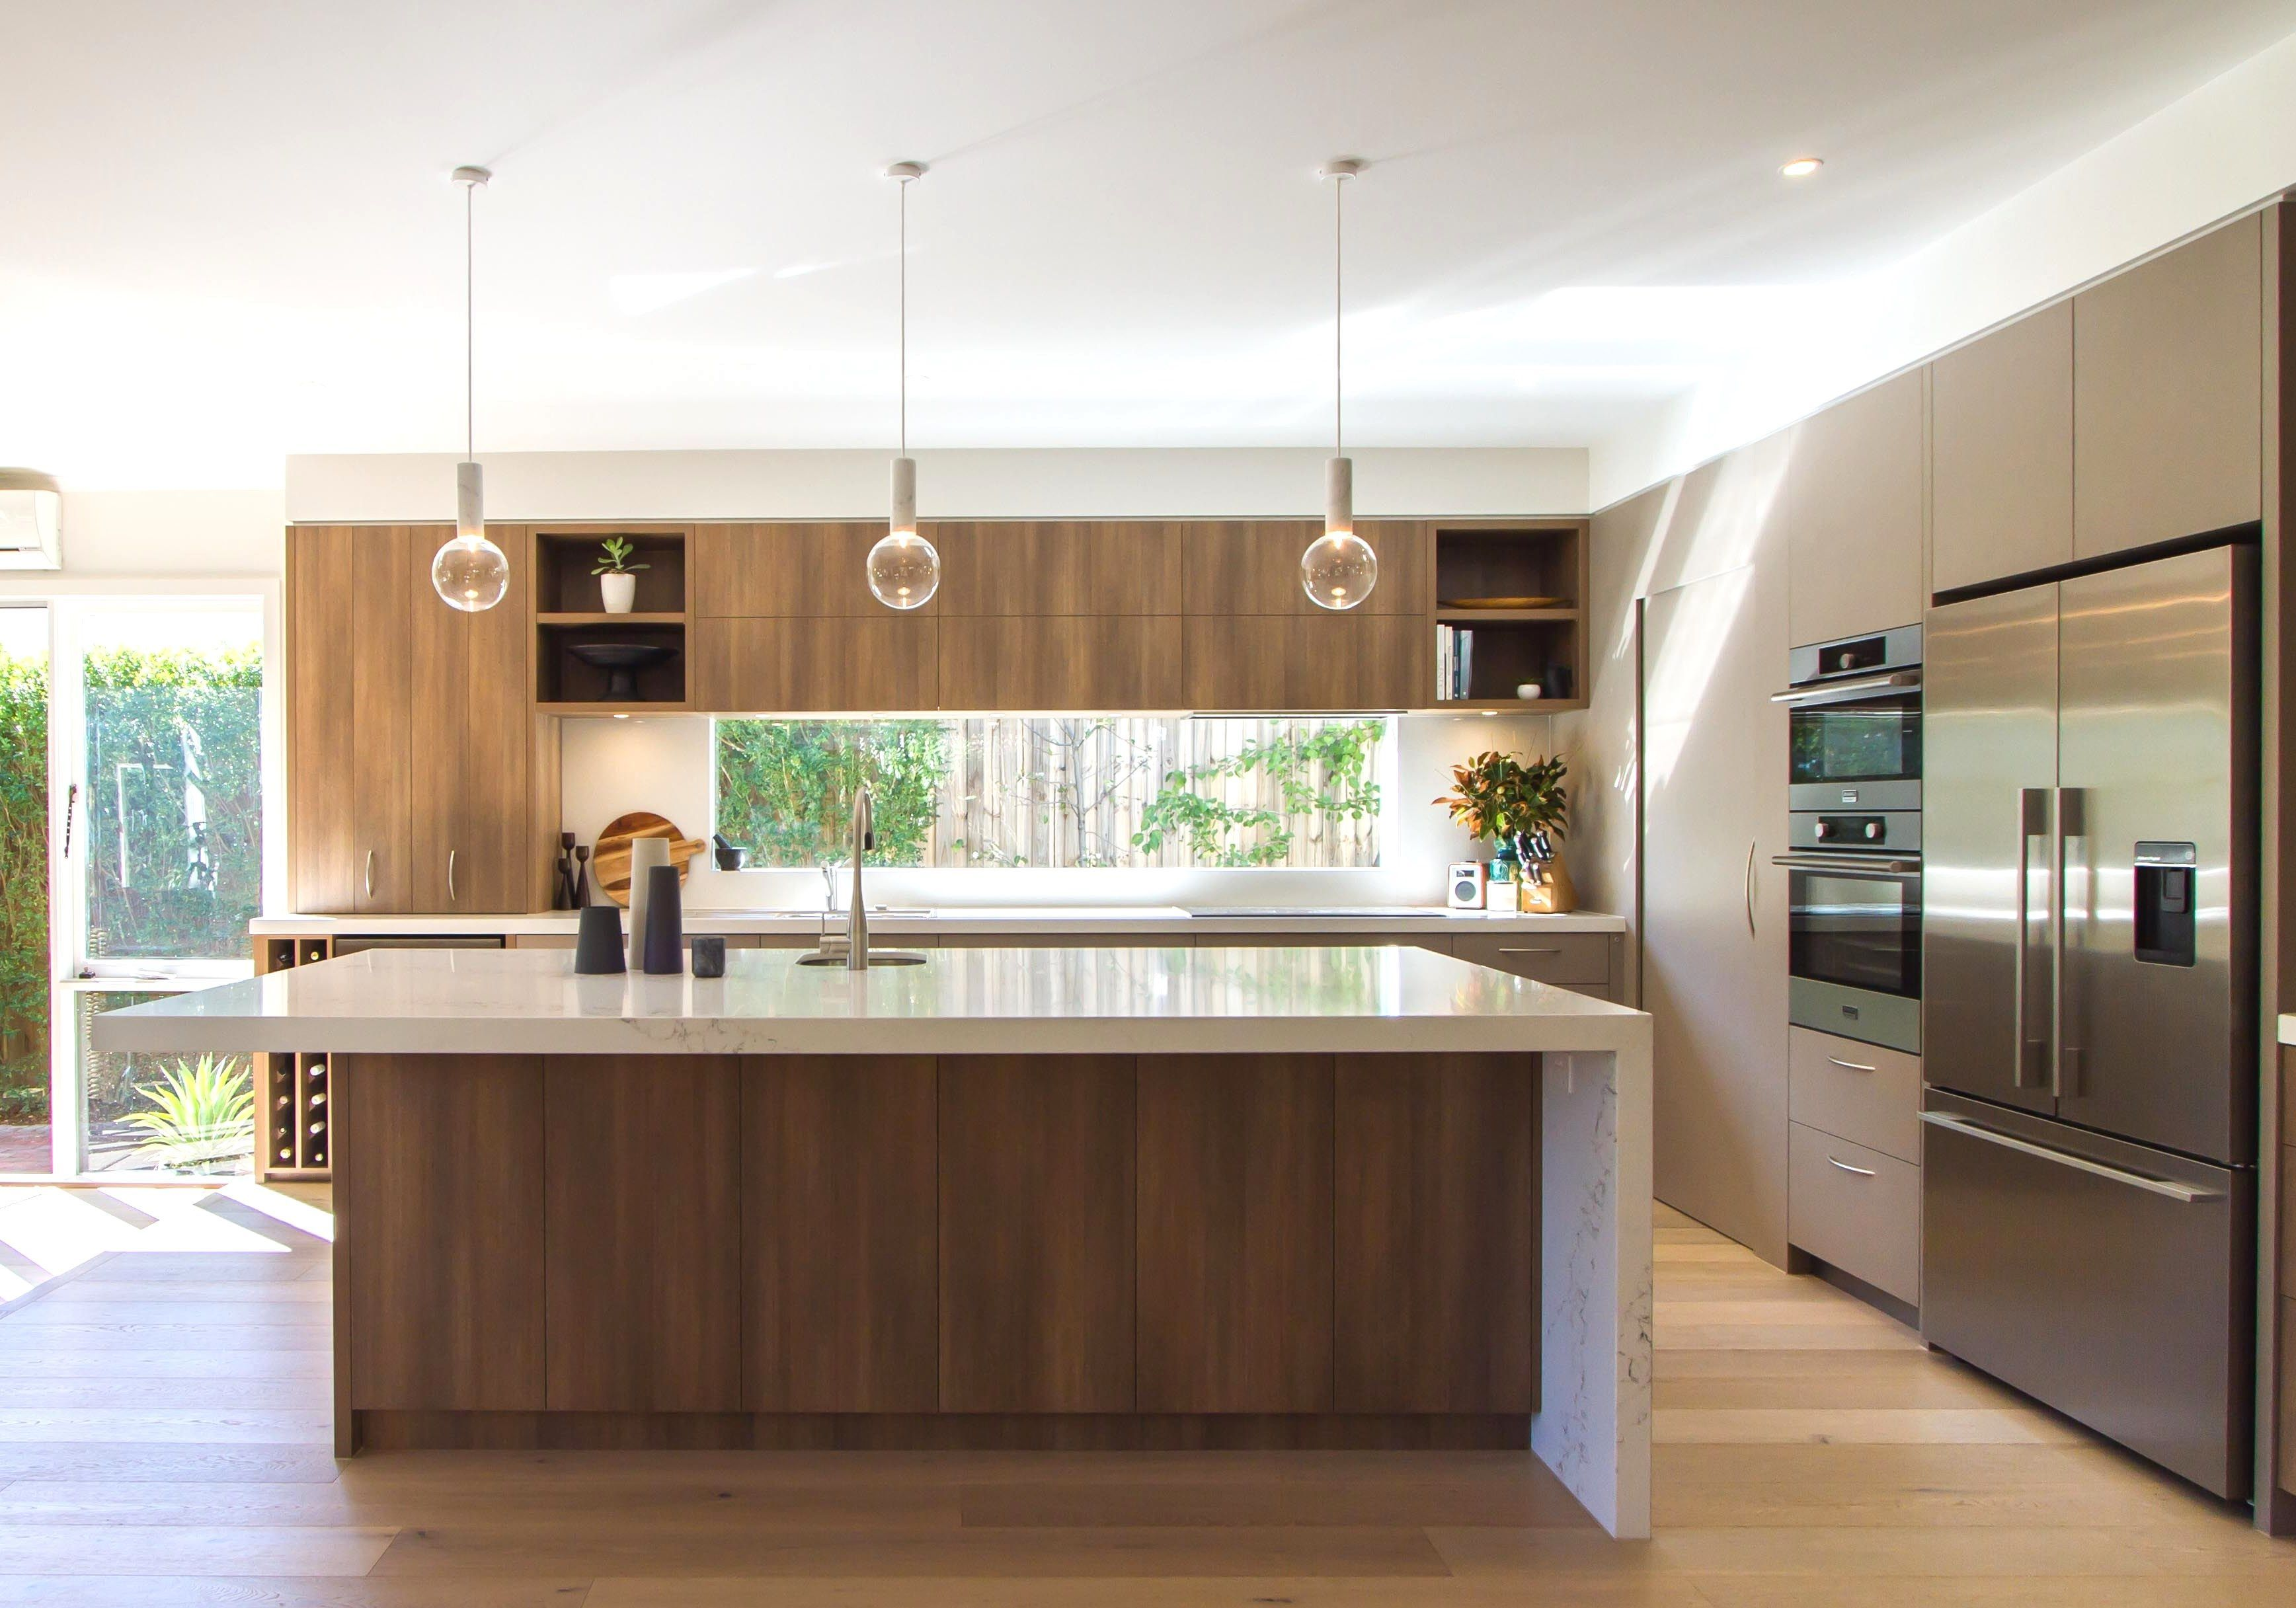 Kitchen Design Centre Hobart Large Modern Contemporary Kitchen In Warm Tones With A Huge Island